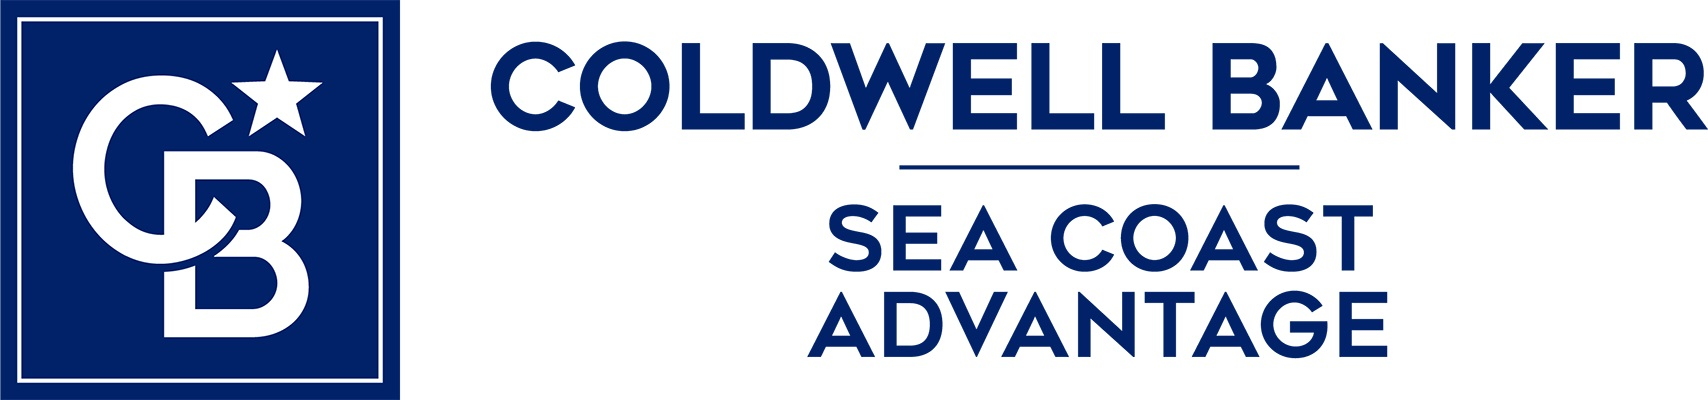 Catherine Lea - Coldwell Banker Sea Coast Advantage Realty Logo